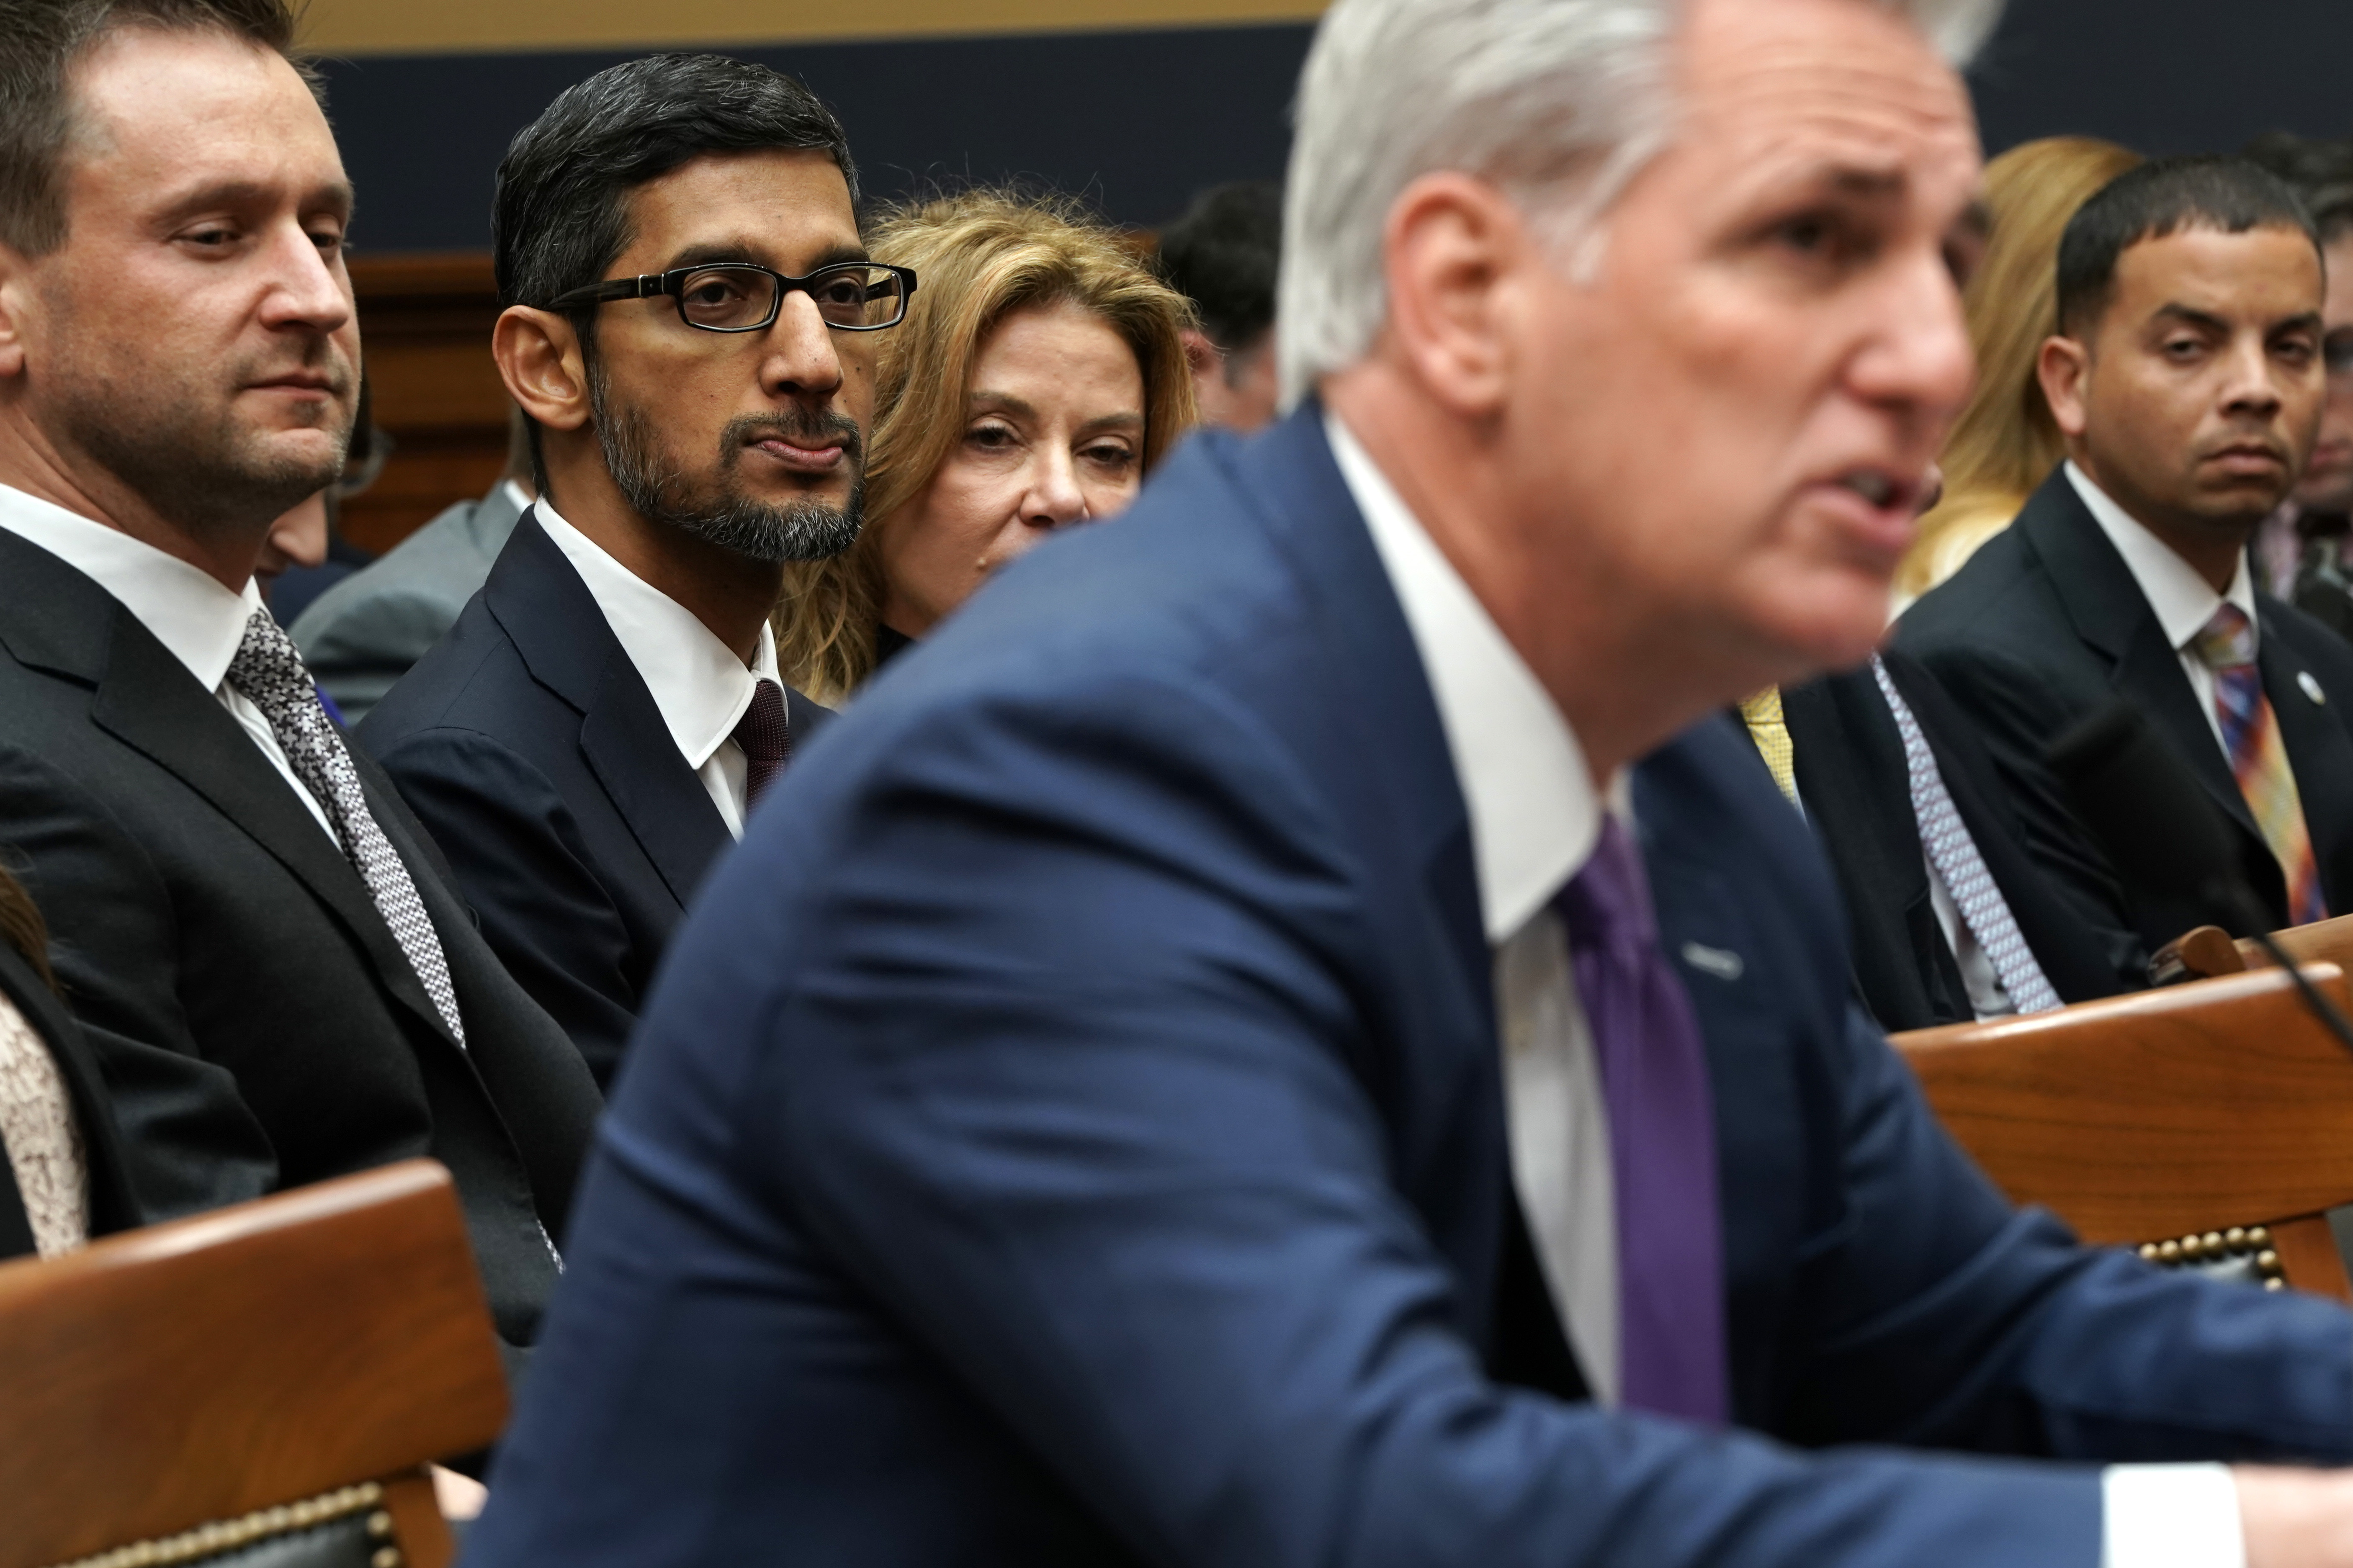 Google CEO Sundar Pichai prepares to testify as House Majority Leader Kevin McCarthy (R-CA) speaks before the House Judiciary Committee at the Rayburn House Office Building on December 11, 2018 in Washington, DC. (Photo by Alex Wong/Getty Images)